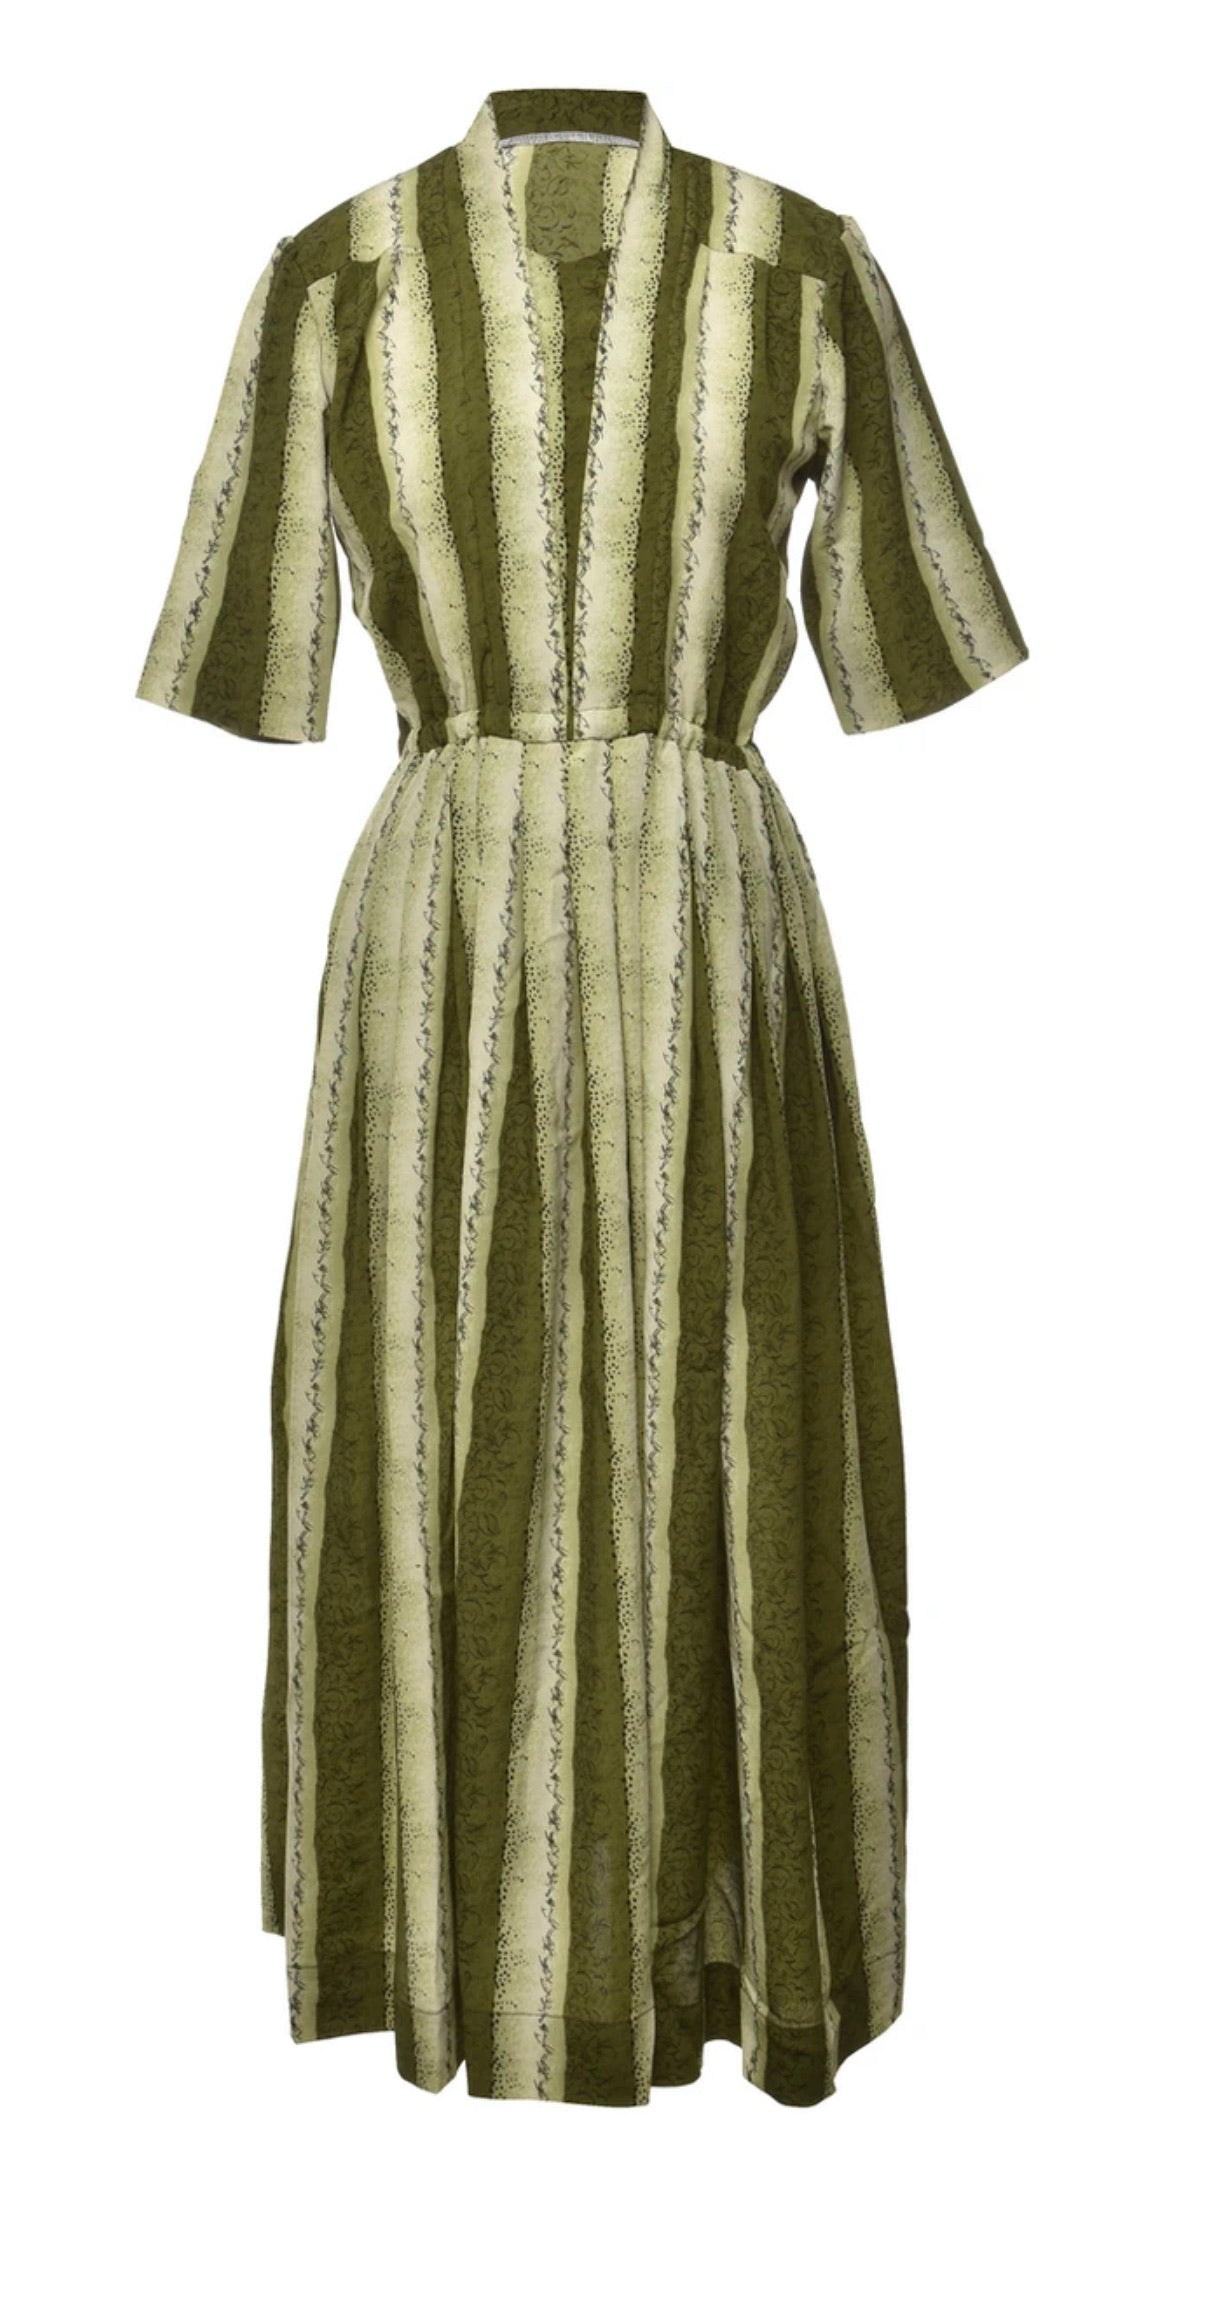 The Veranera Green Striped Dress